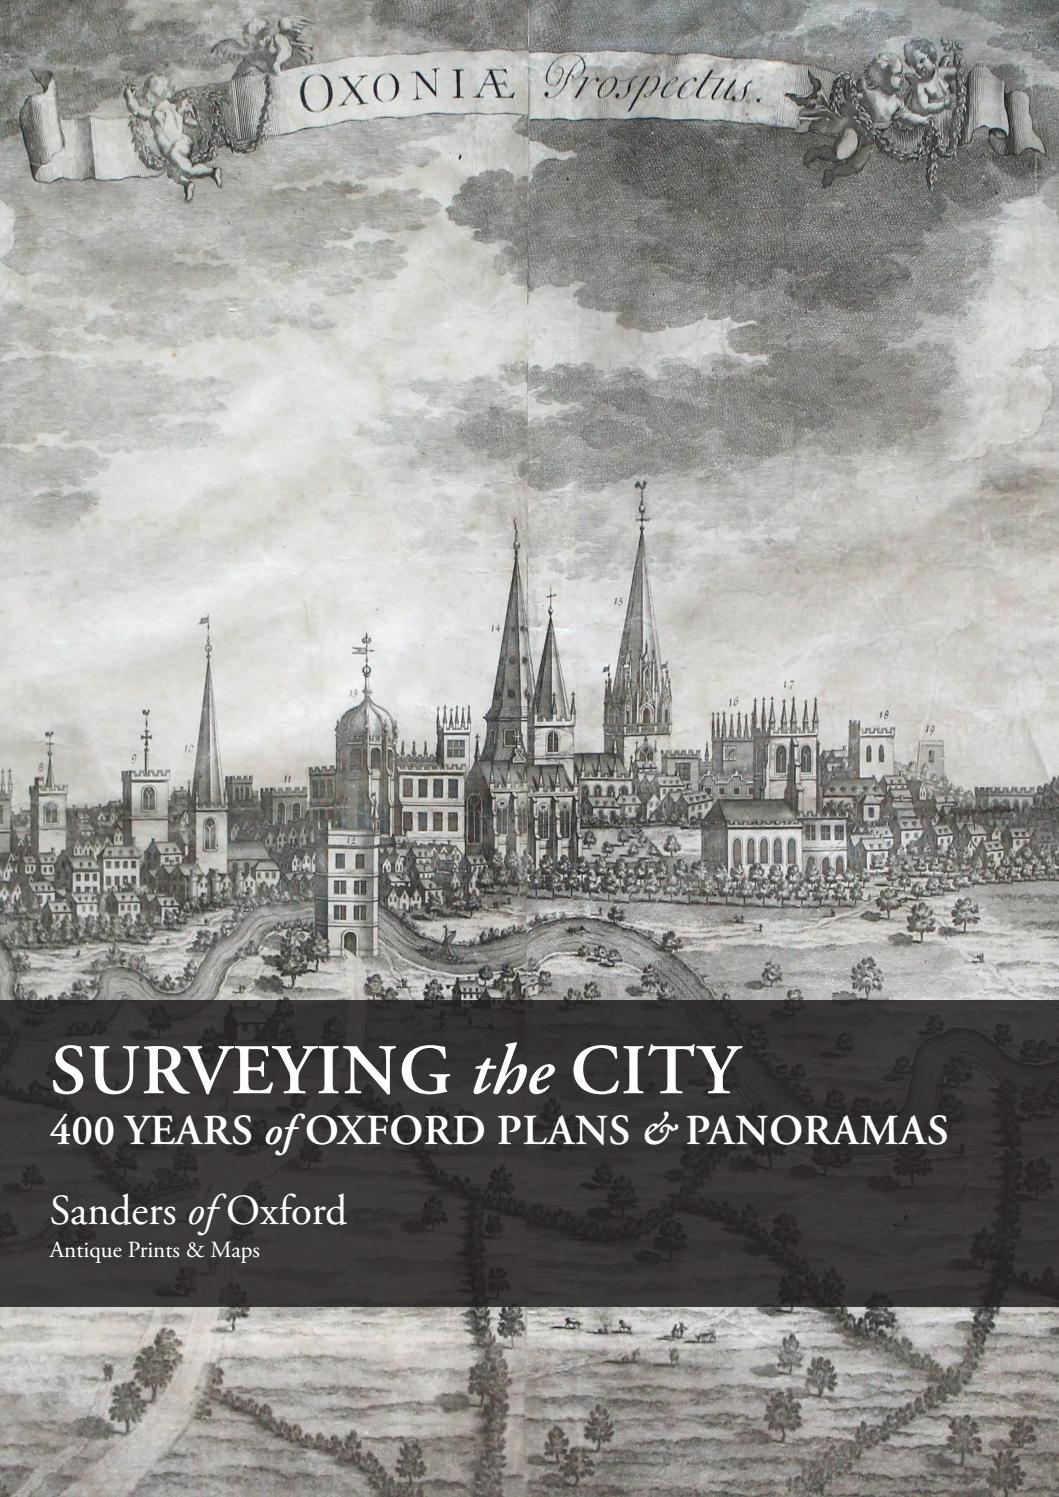 Surveying The City 400 Years Of Oxford Plans Panoramas By Sanders Of Oxford Issuu